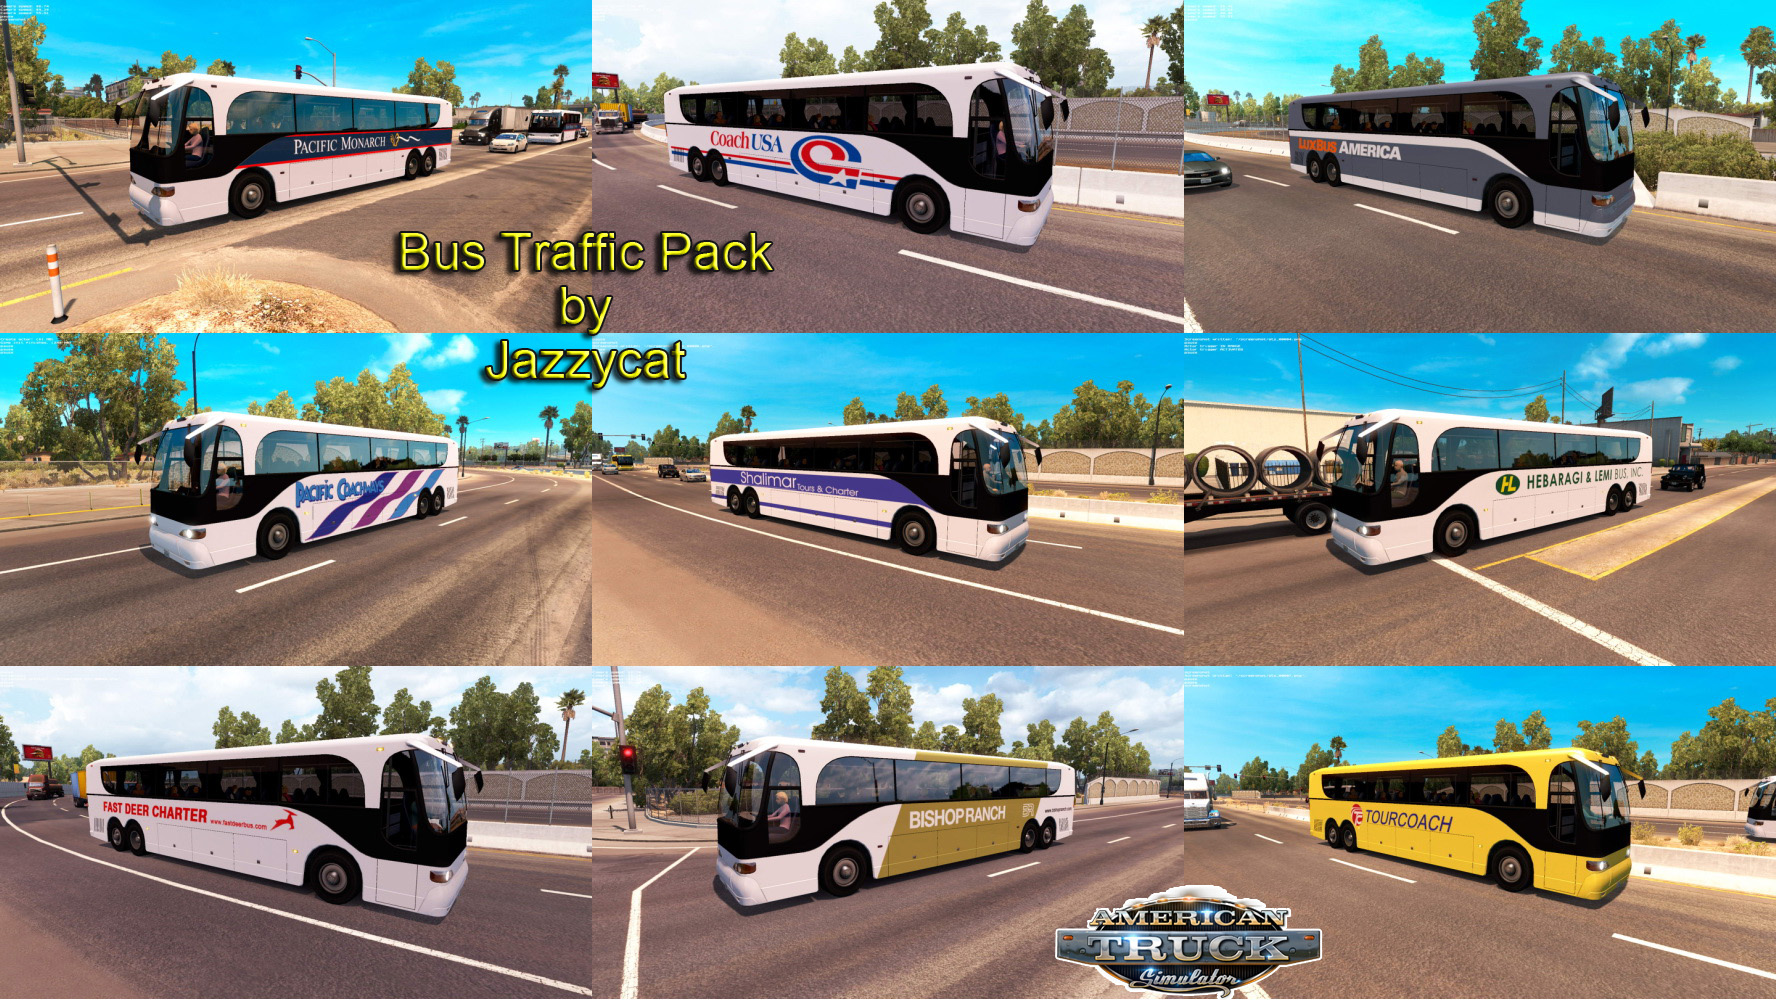 01_bus_traffic_pack_by_Jazzycat_v1.0.jpg